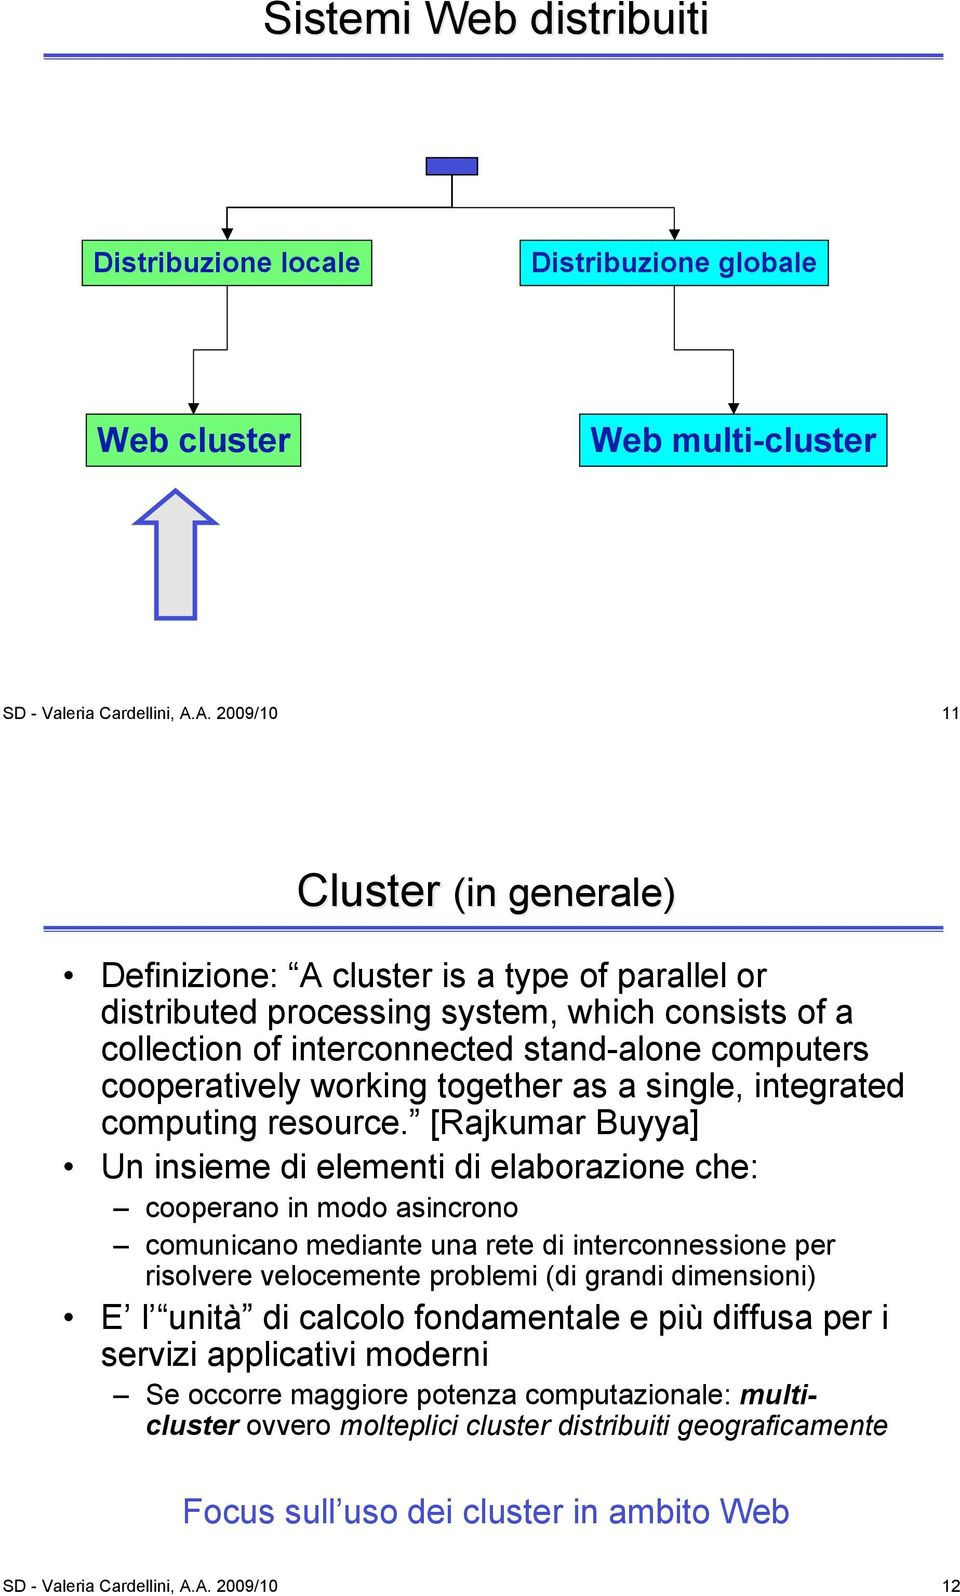 working together as a single, integrated computing resource.